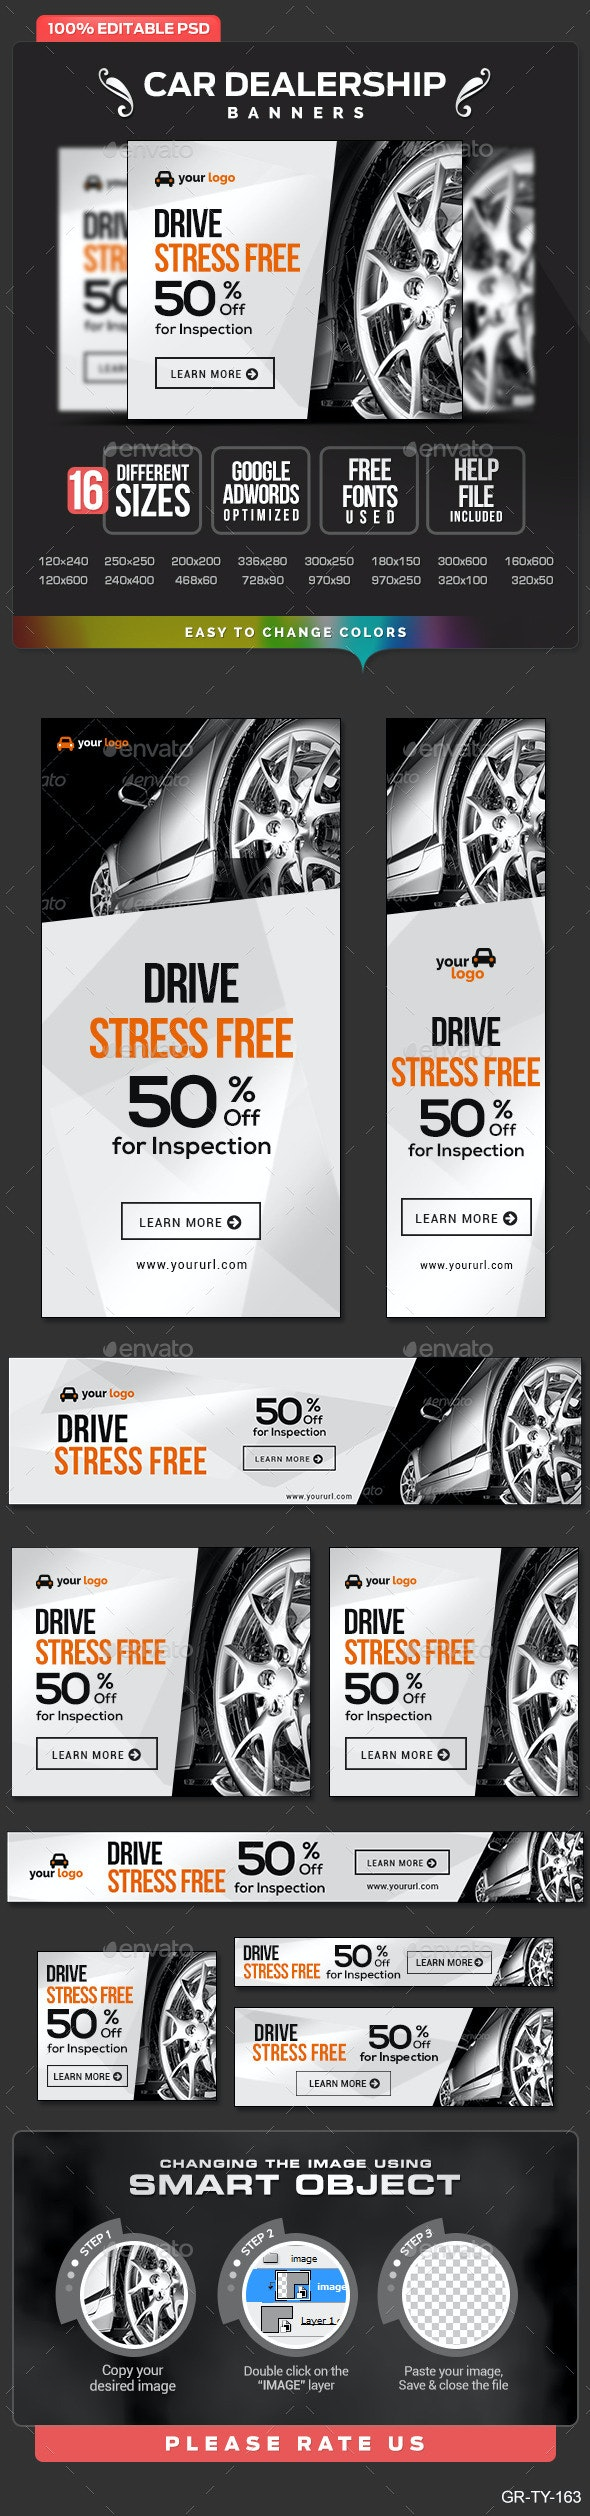 Car Dealership Banners - Banners & Ads Web Elements